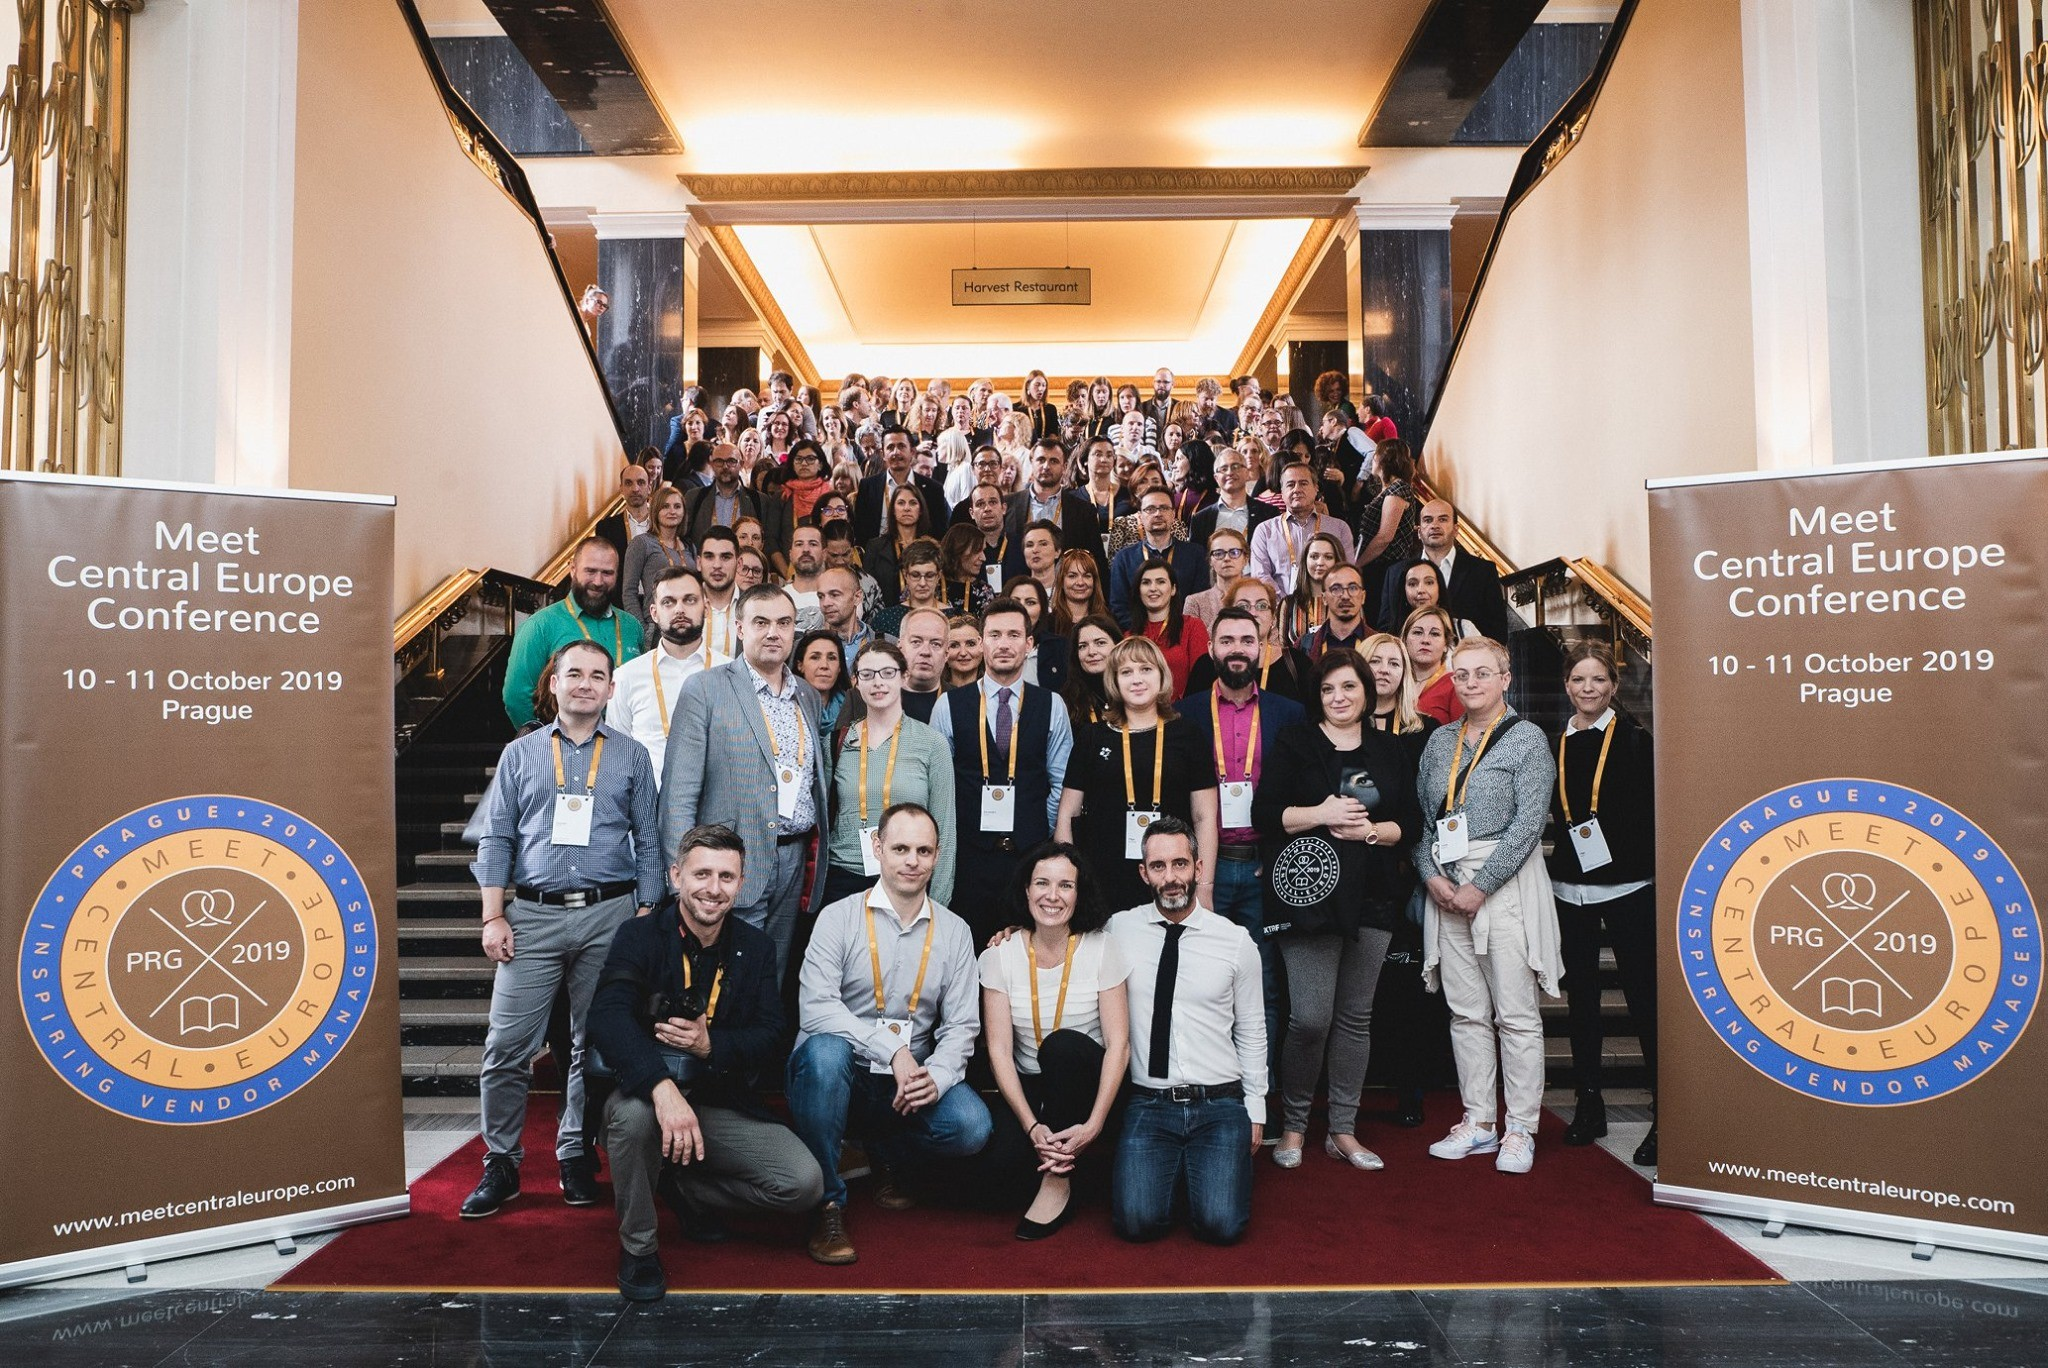 Meet Central Europe Conference